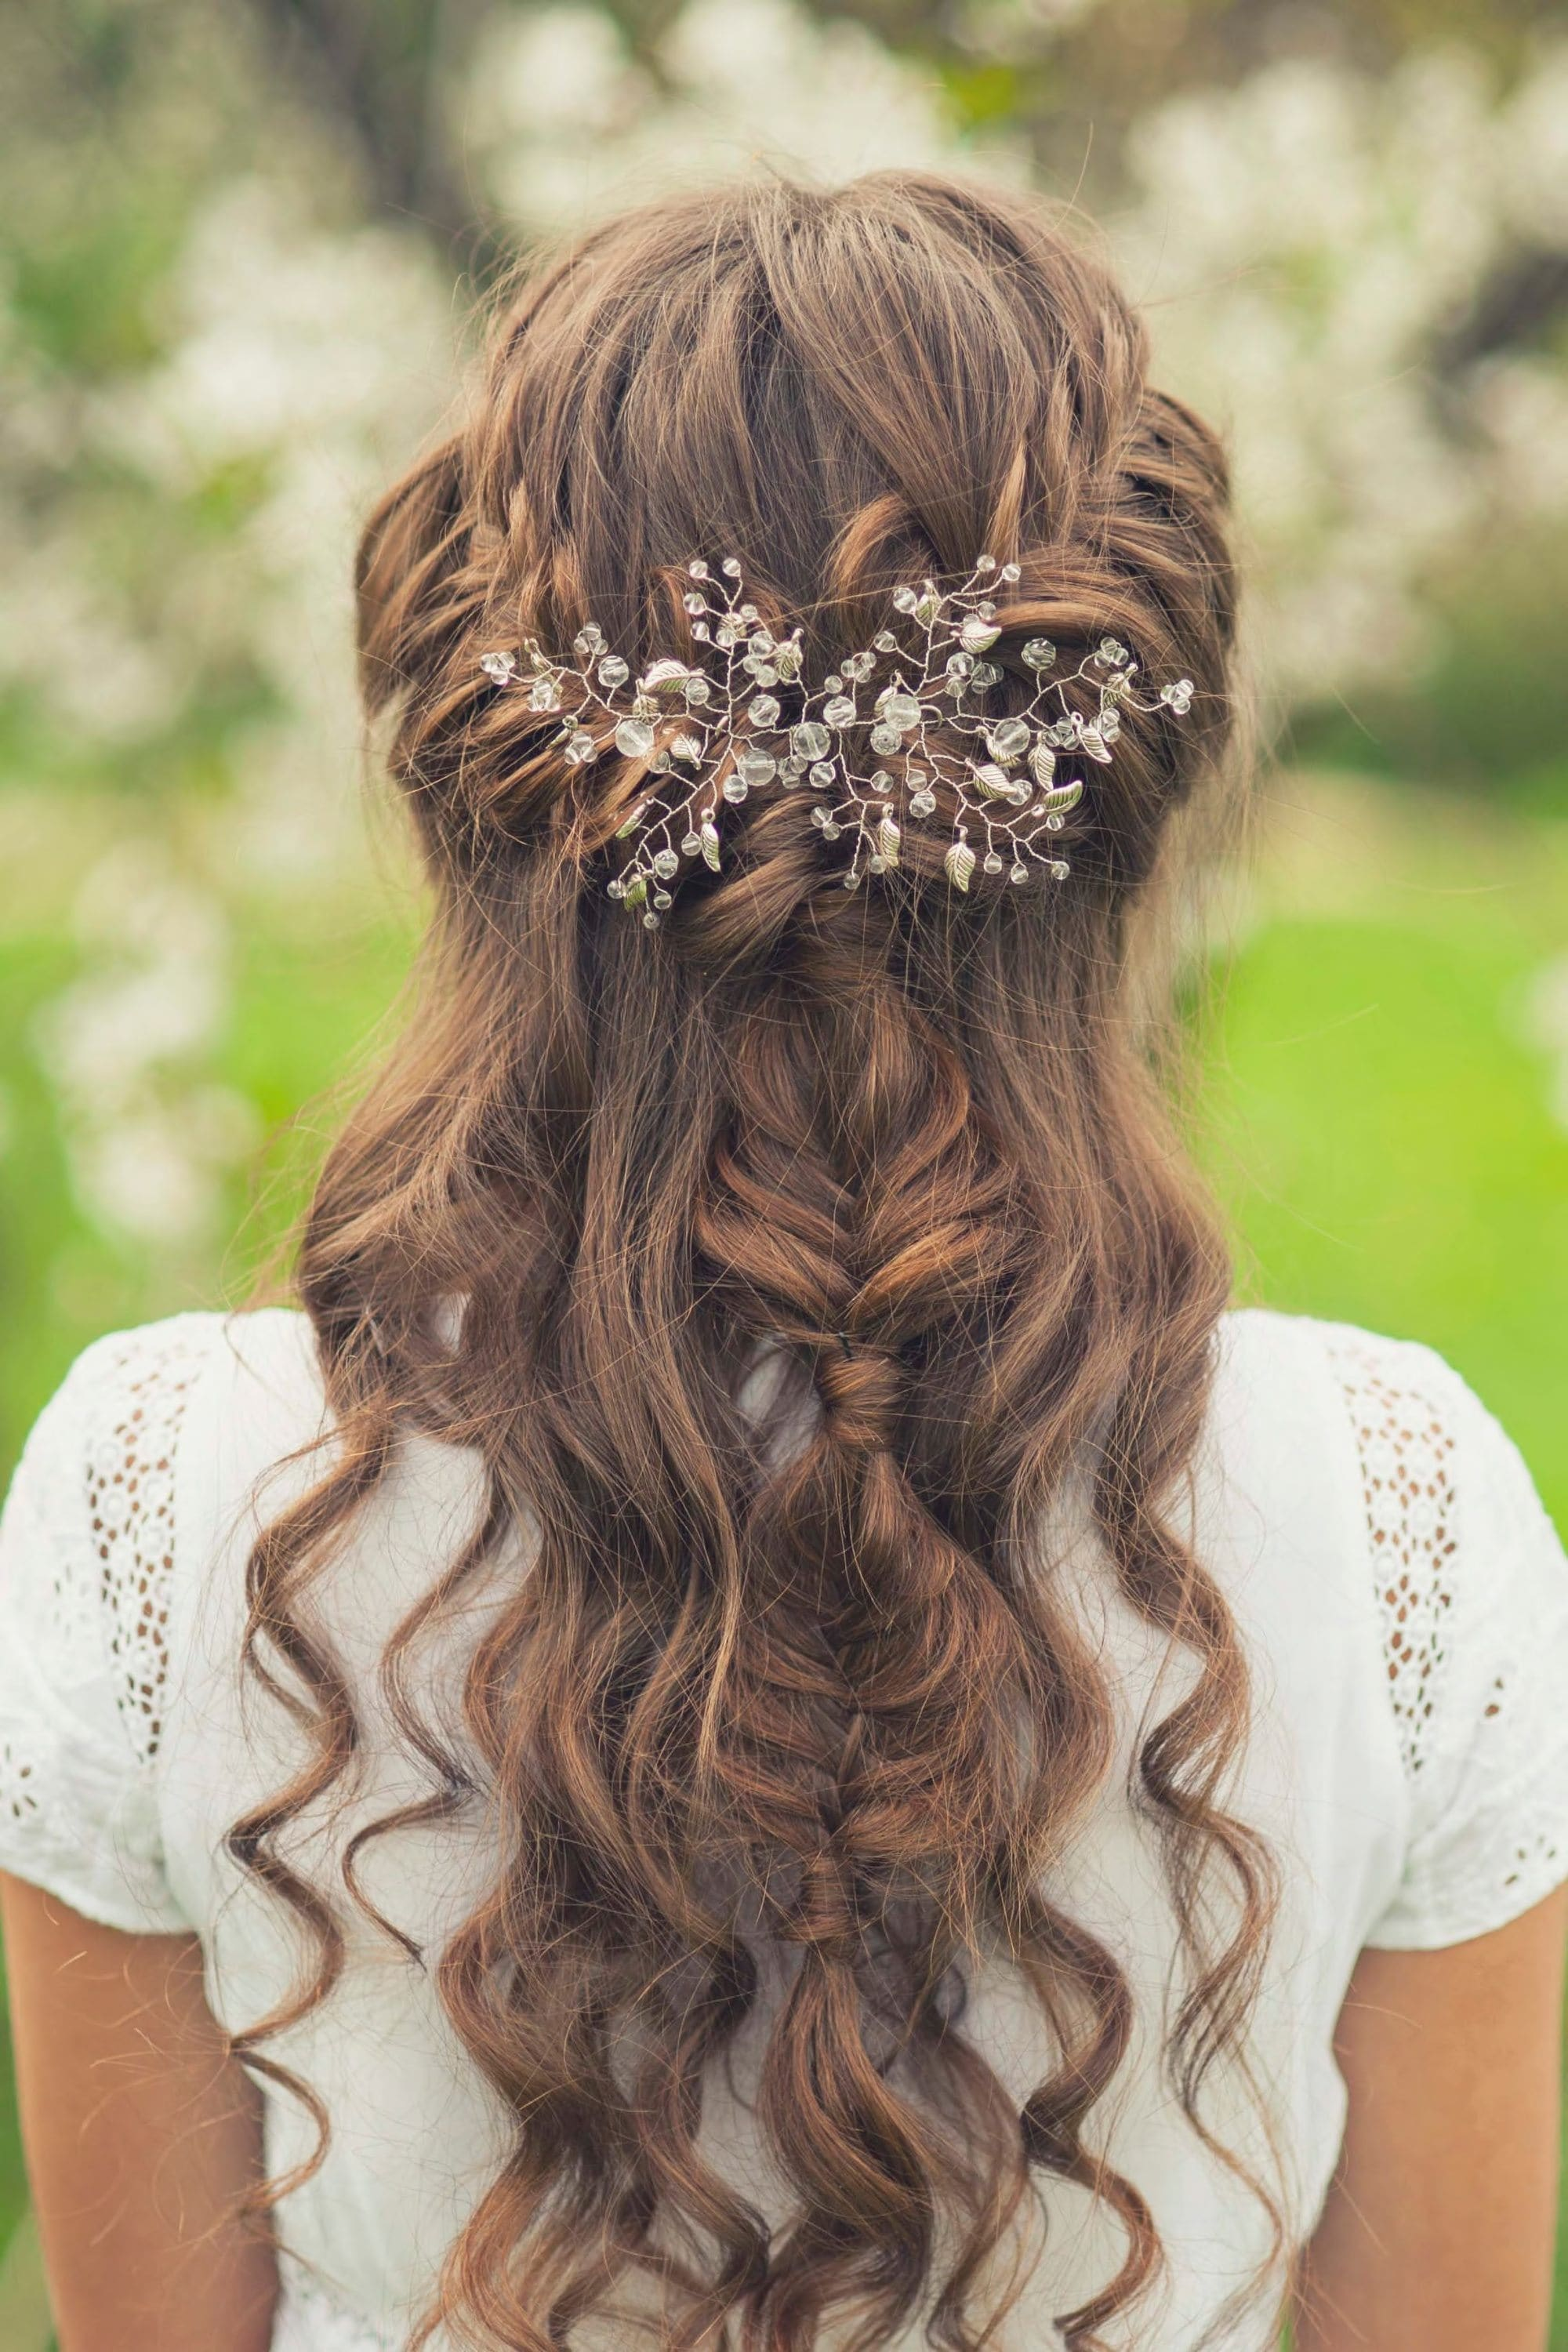 48 Best Bridal and Wedding Hairstyles in 2020 | All Things Hair